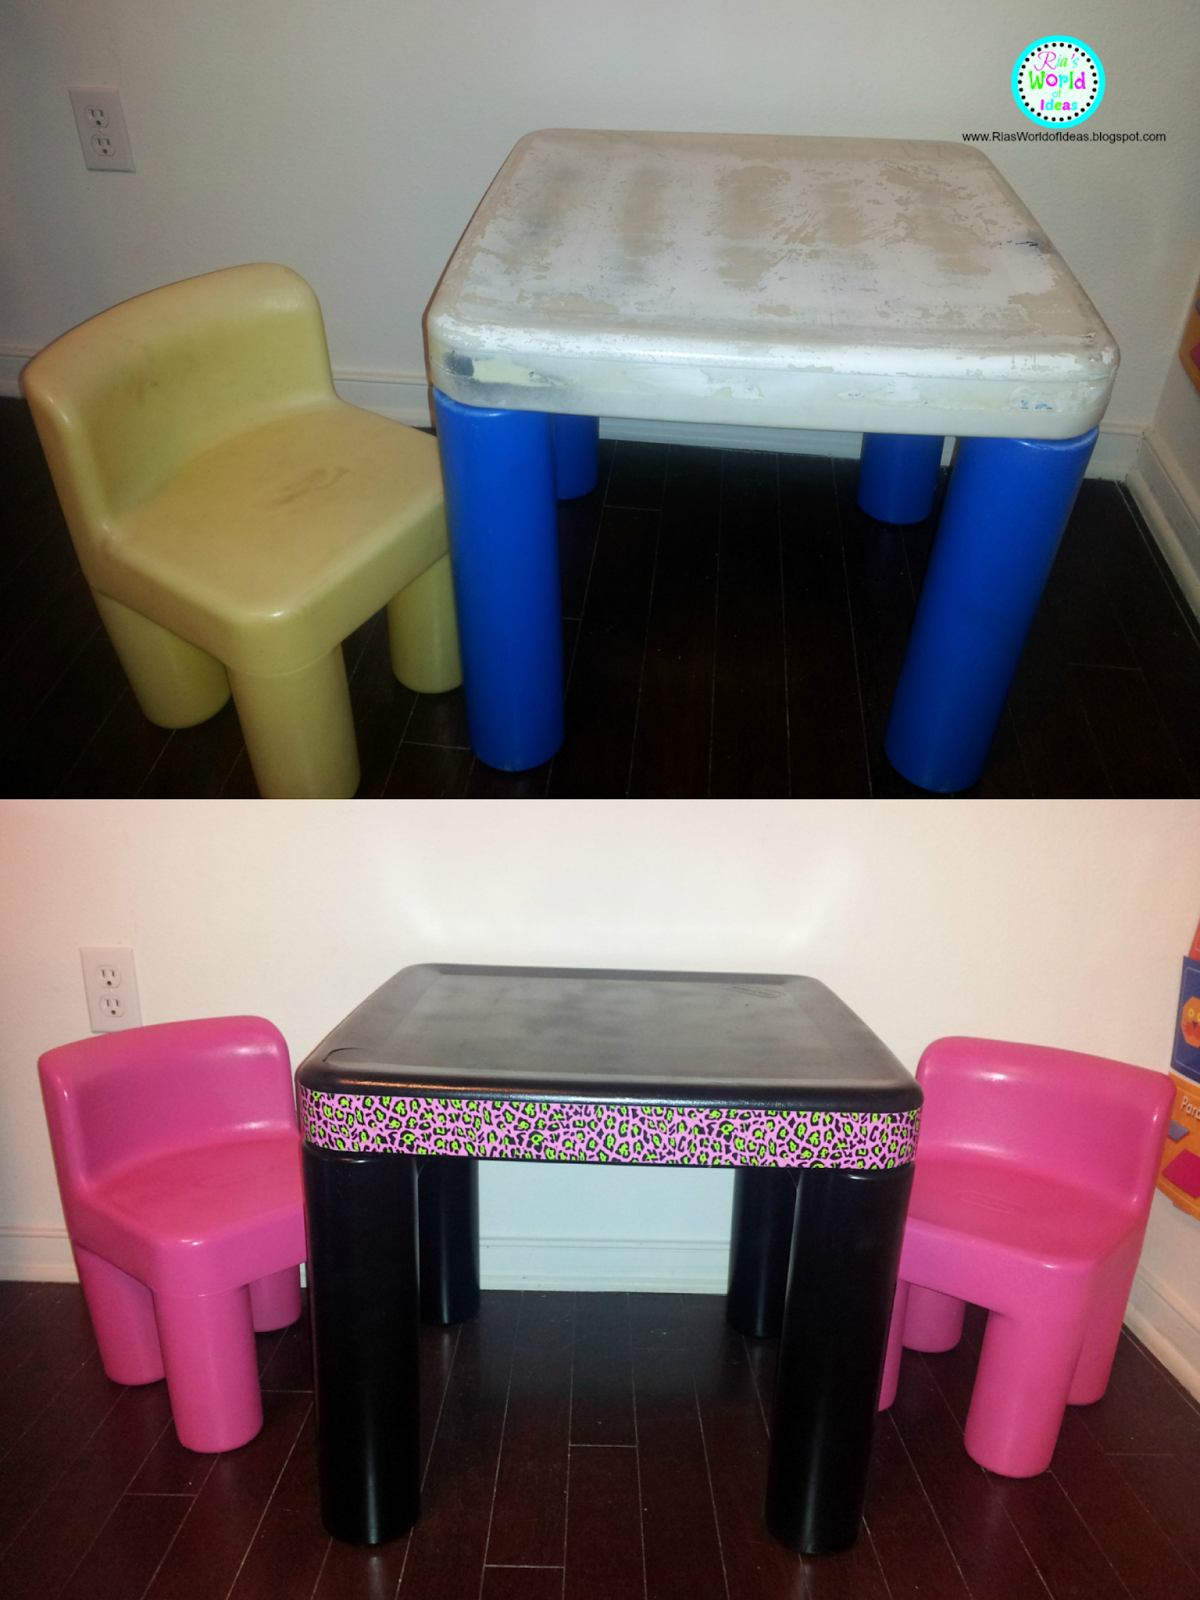 ugly plastic toddler desk turned cute [Just bought a Little